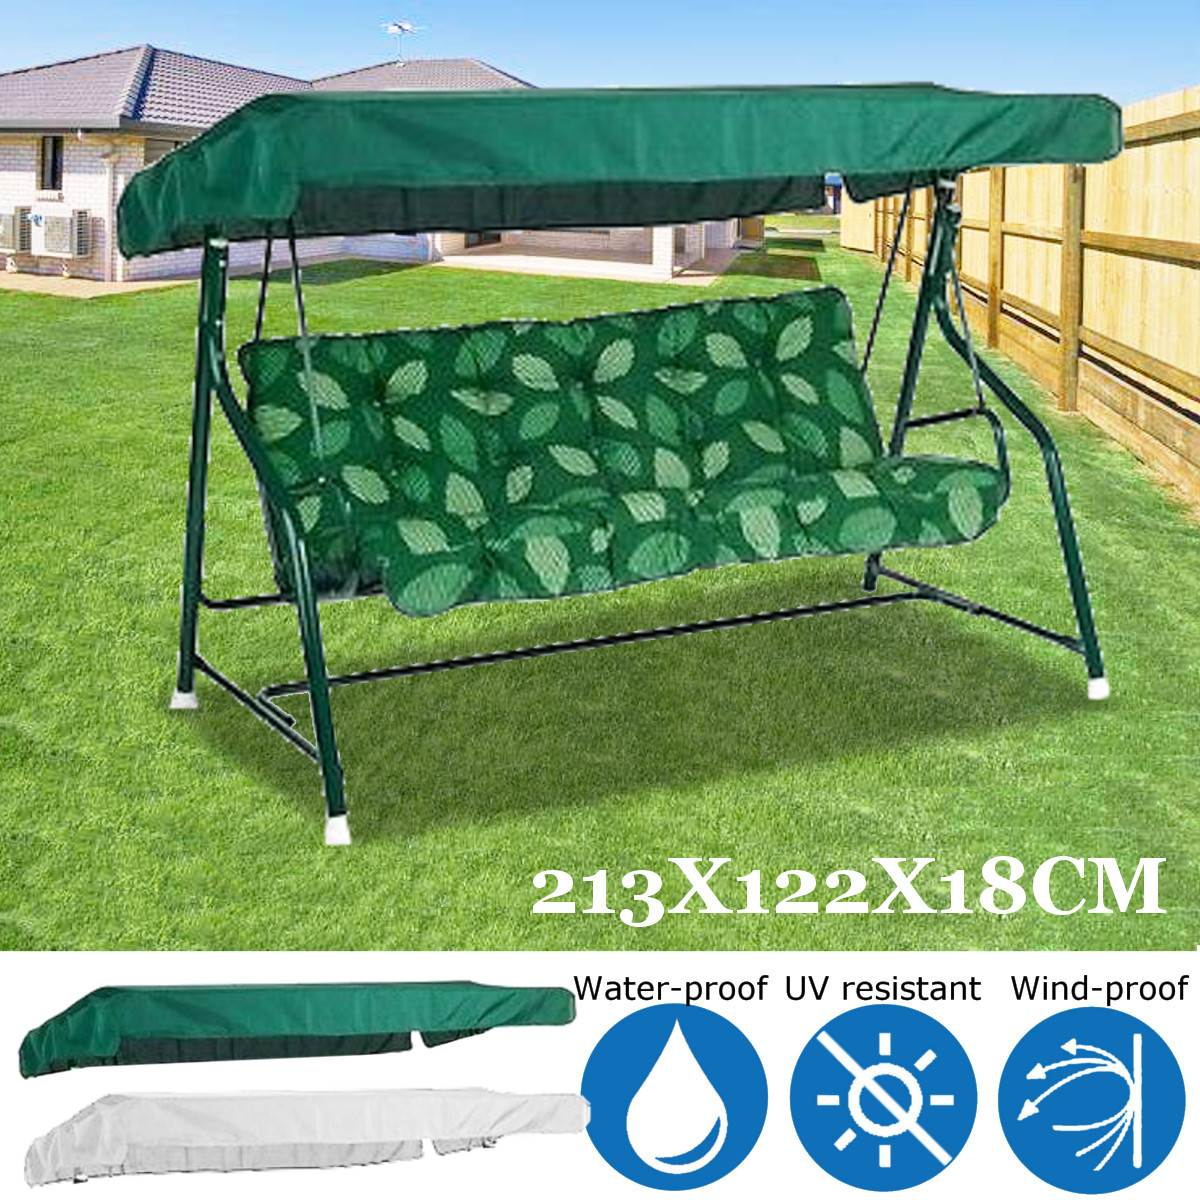 Garden Swing Seat Chair Top Cover